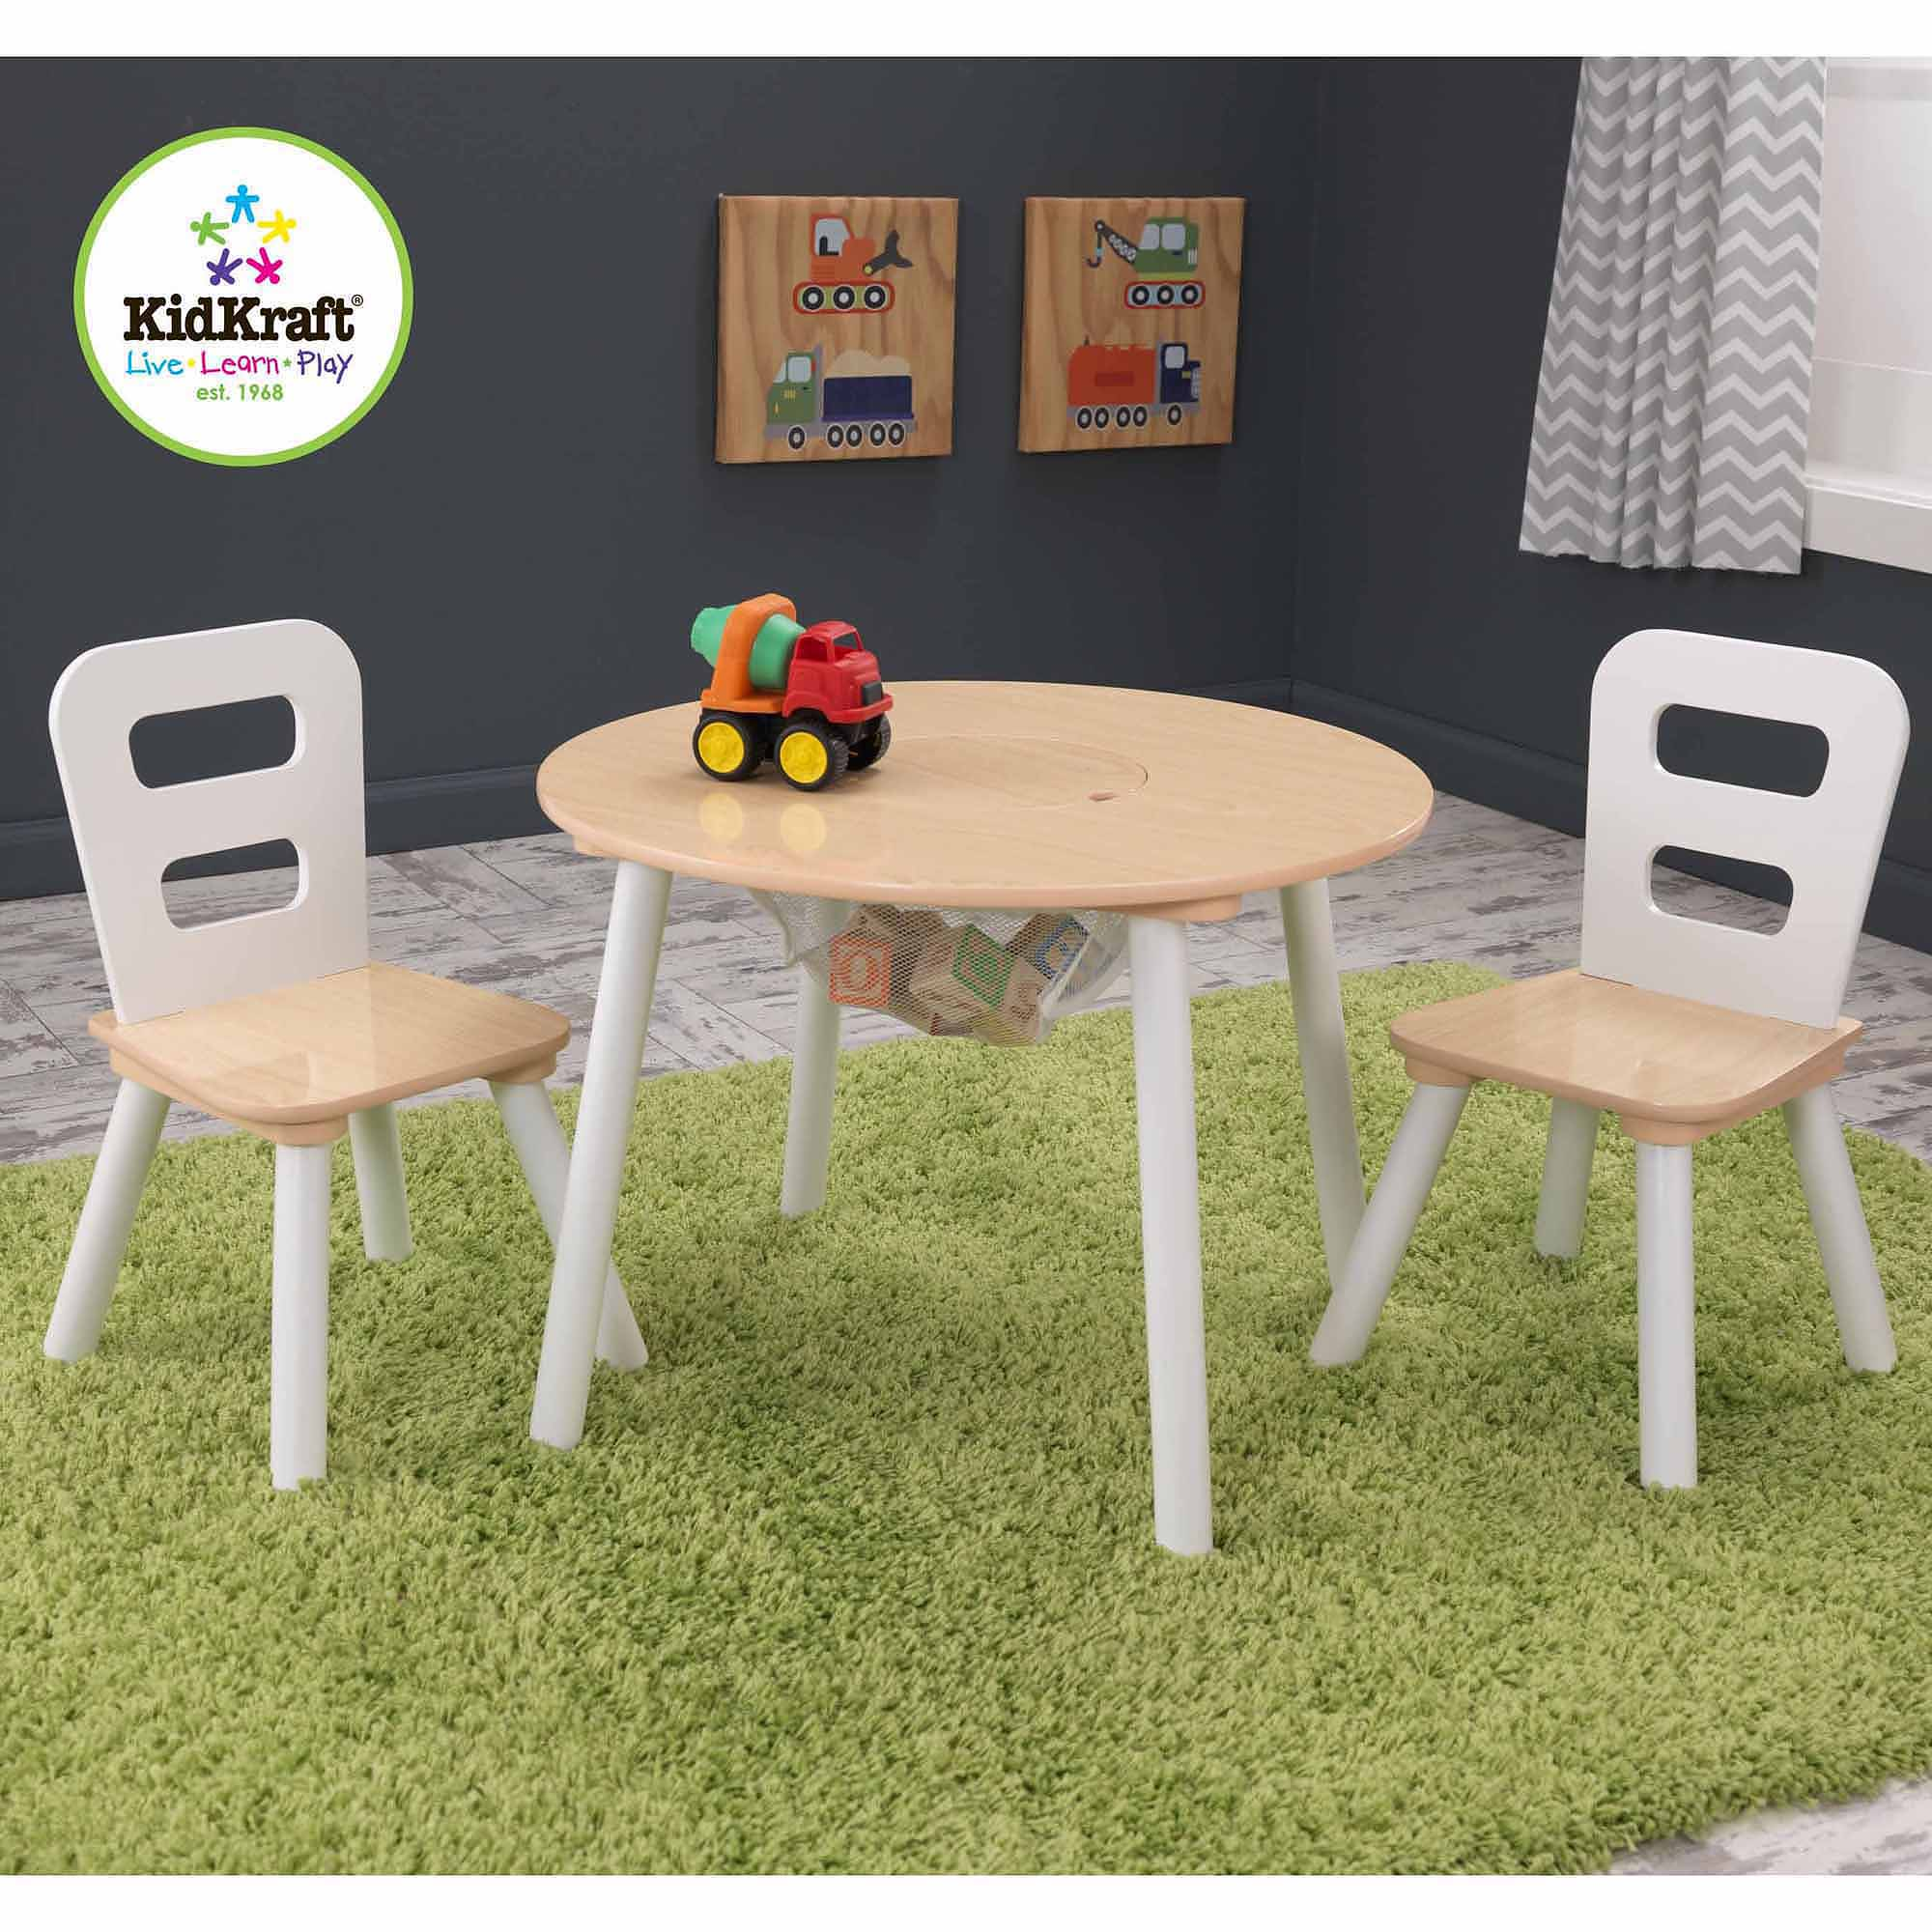 KidKraft Round Storage Table and 2 Chairs Set, White/Natural